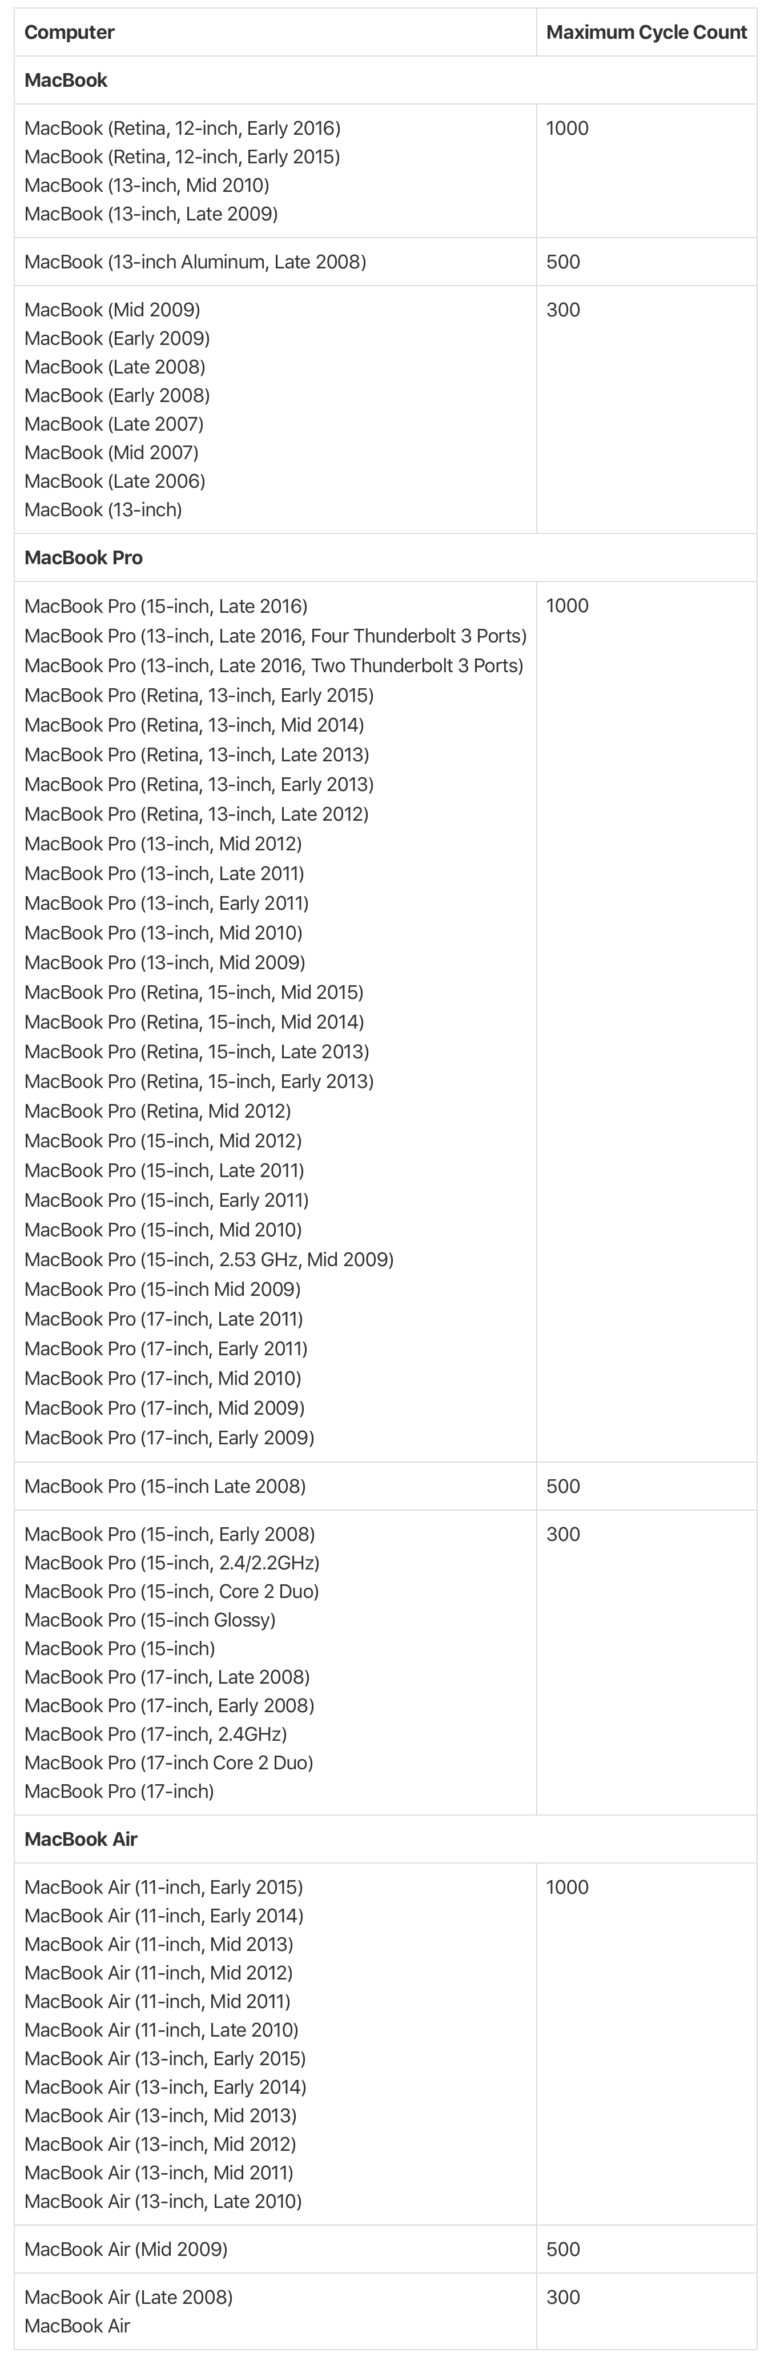 Battery-cycle-count-limits-macbook-768x2369